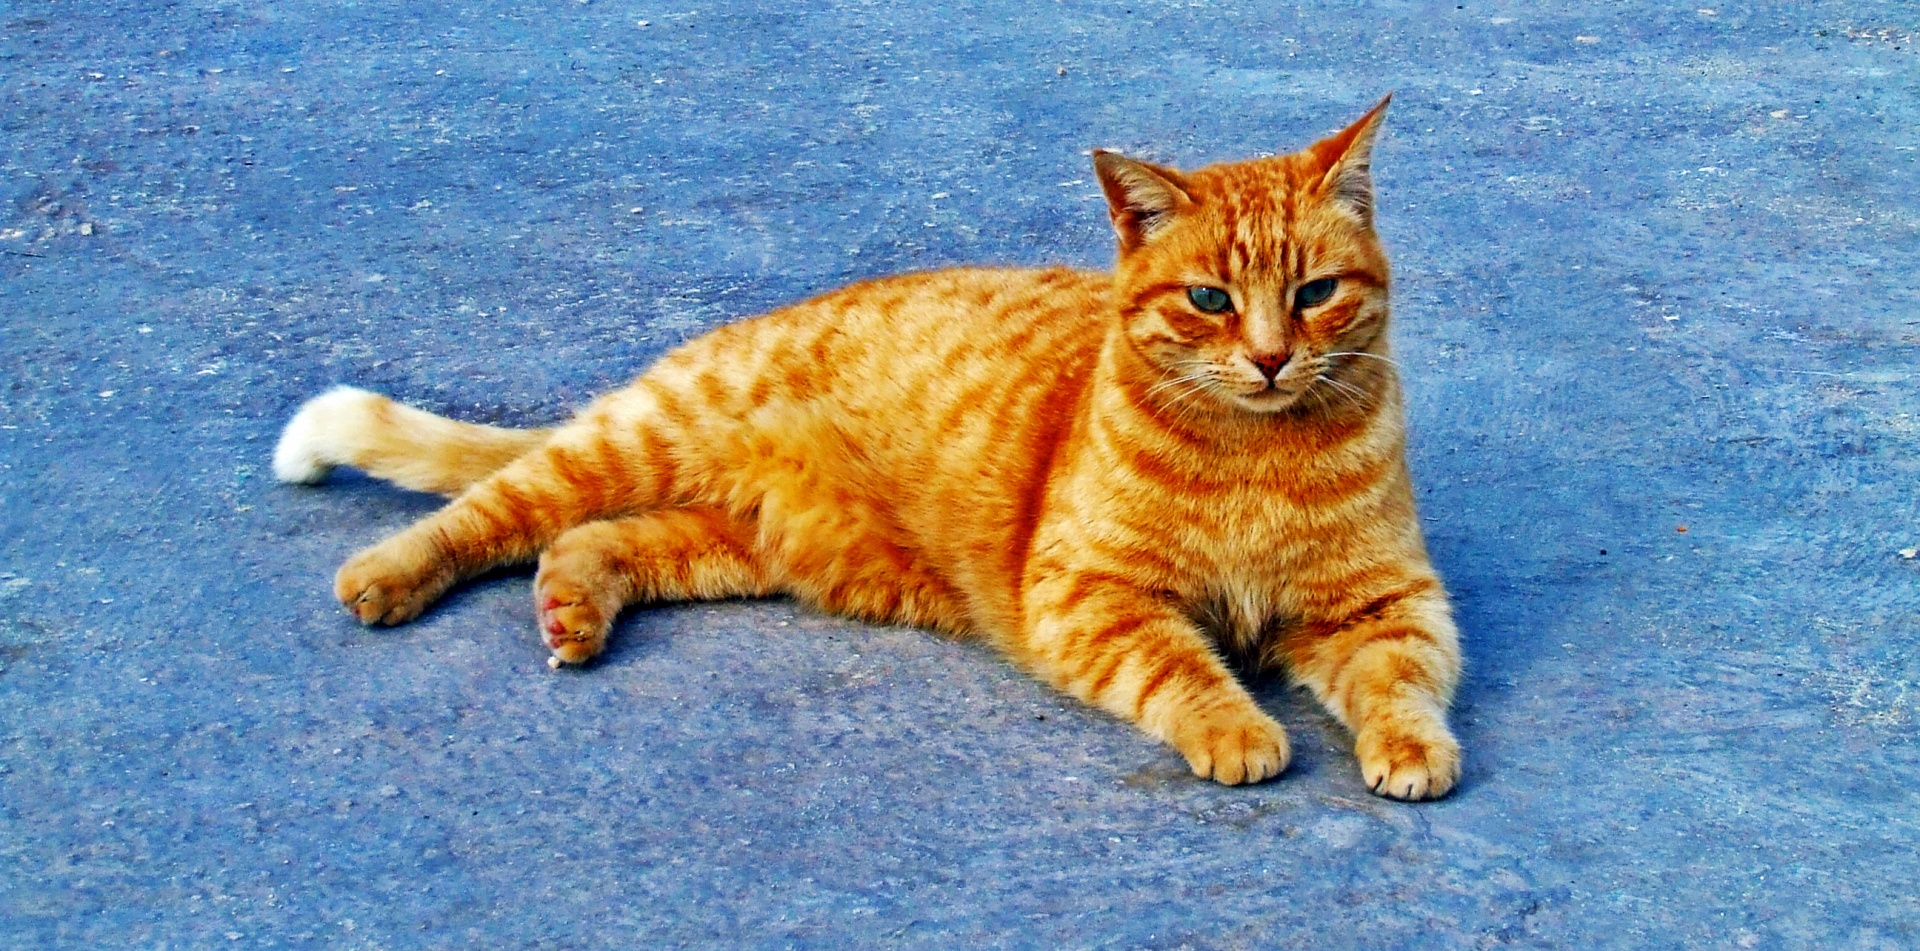 Cute Kitty Wallpapers Download Ginger Cat Free Stock Photo Public Domain Pictures